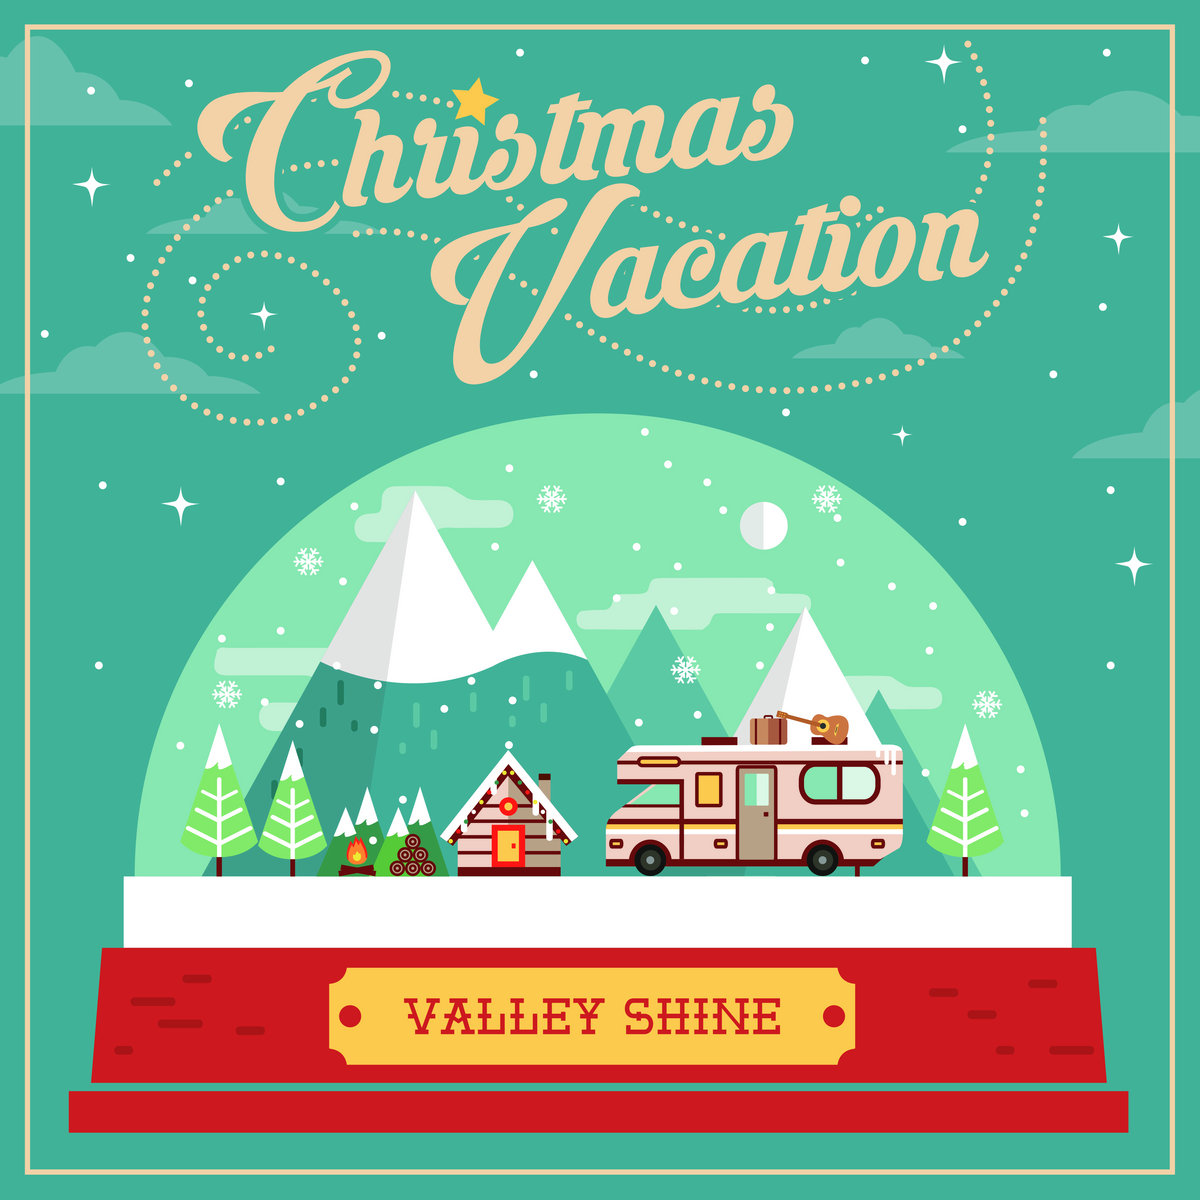 Christmas Vacation | Valley Shine